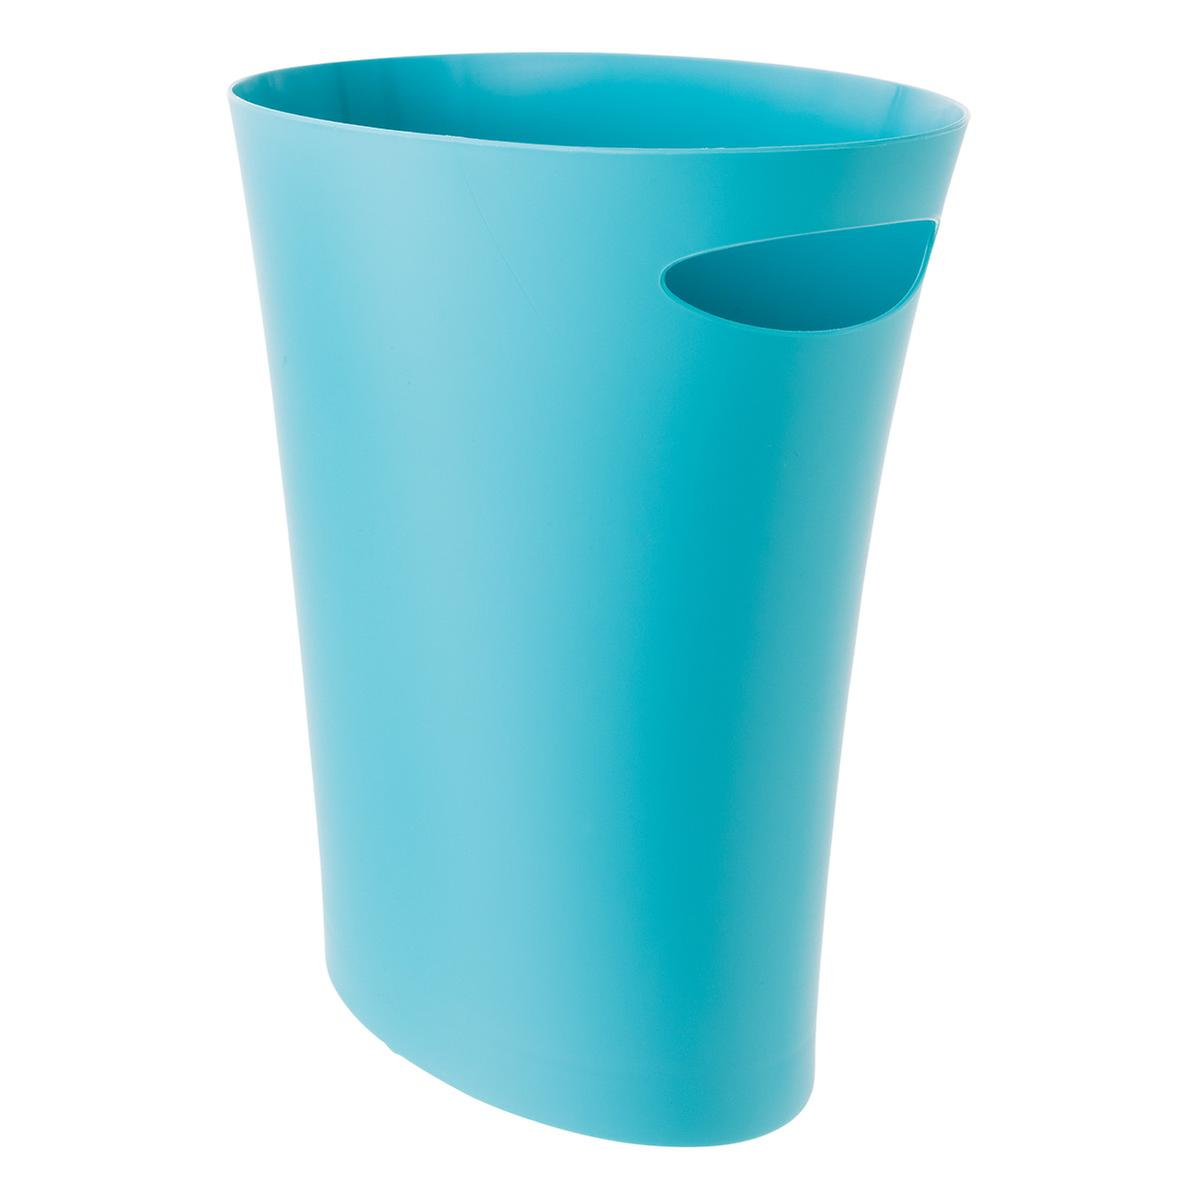 Umbra Blue Skinny Trash Can | The Container Store